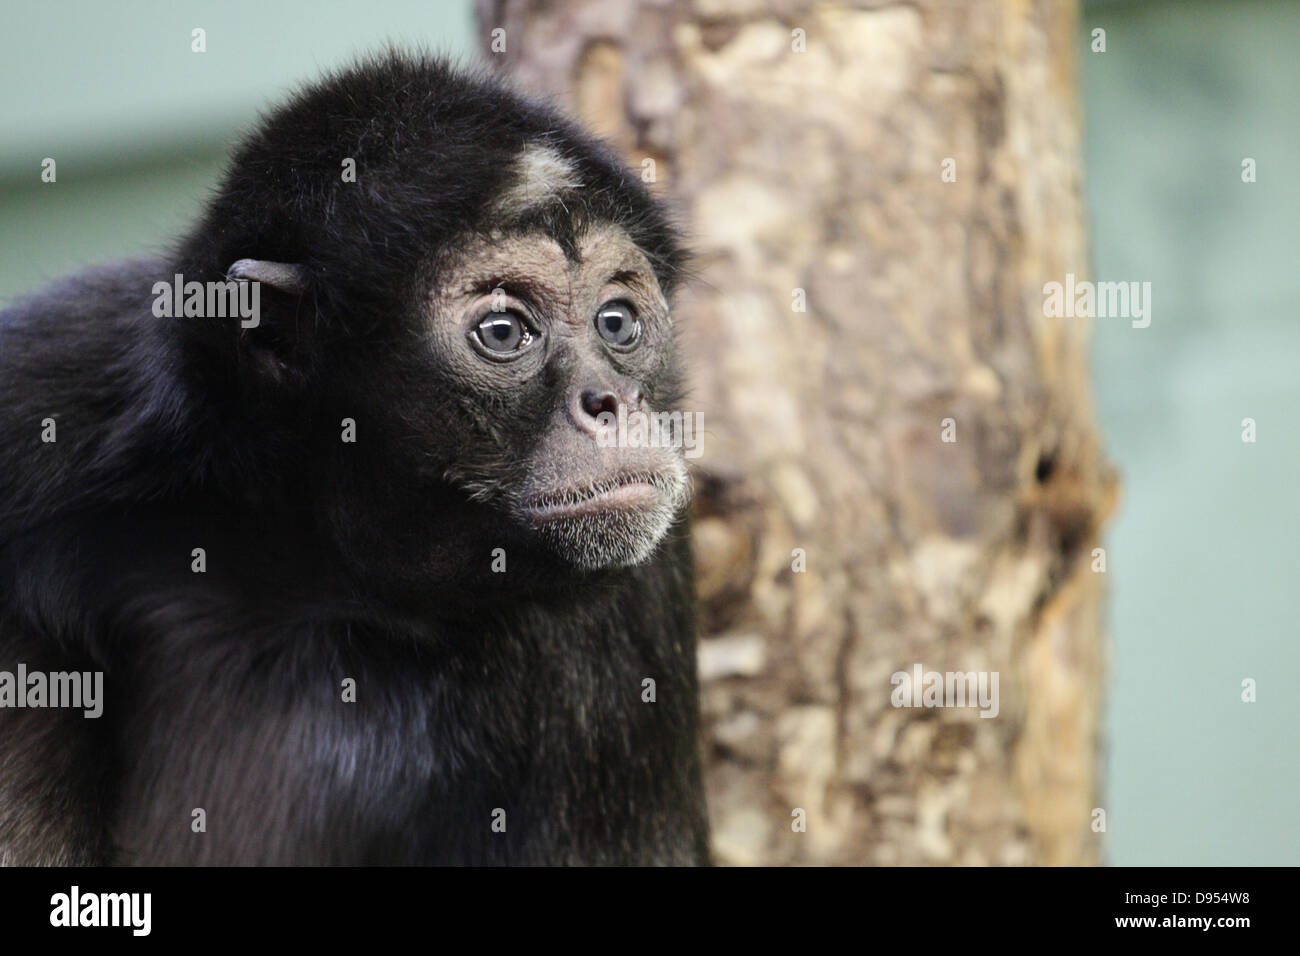 Monkey dans le zoo de Bristol. Photo Stock